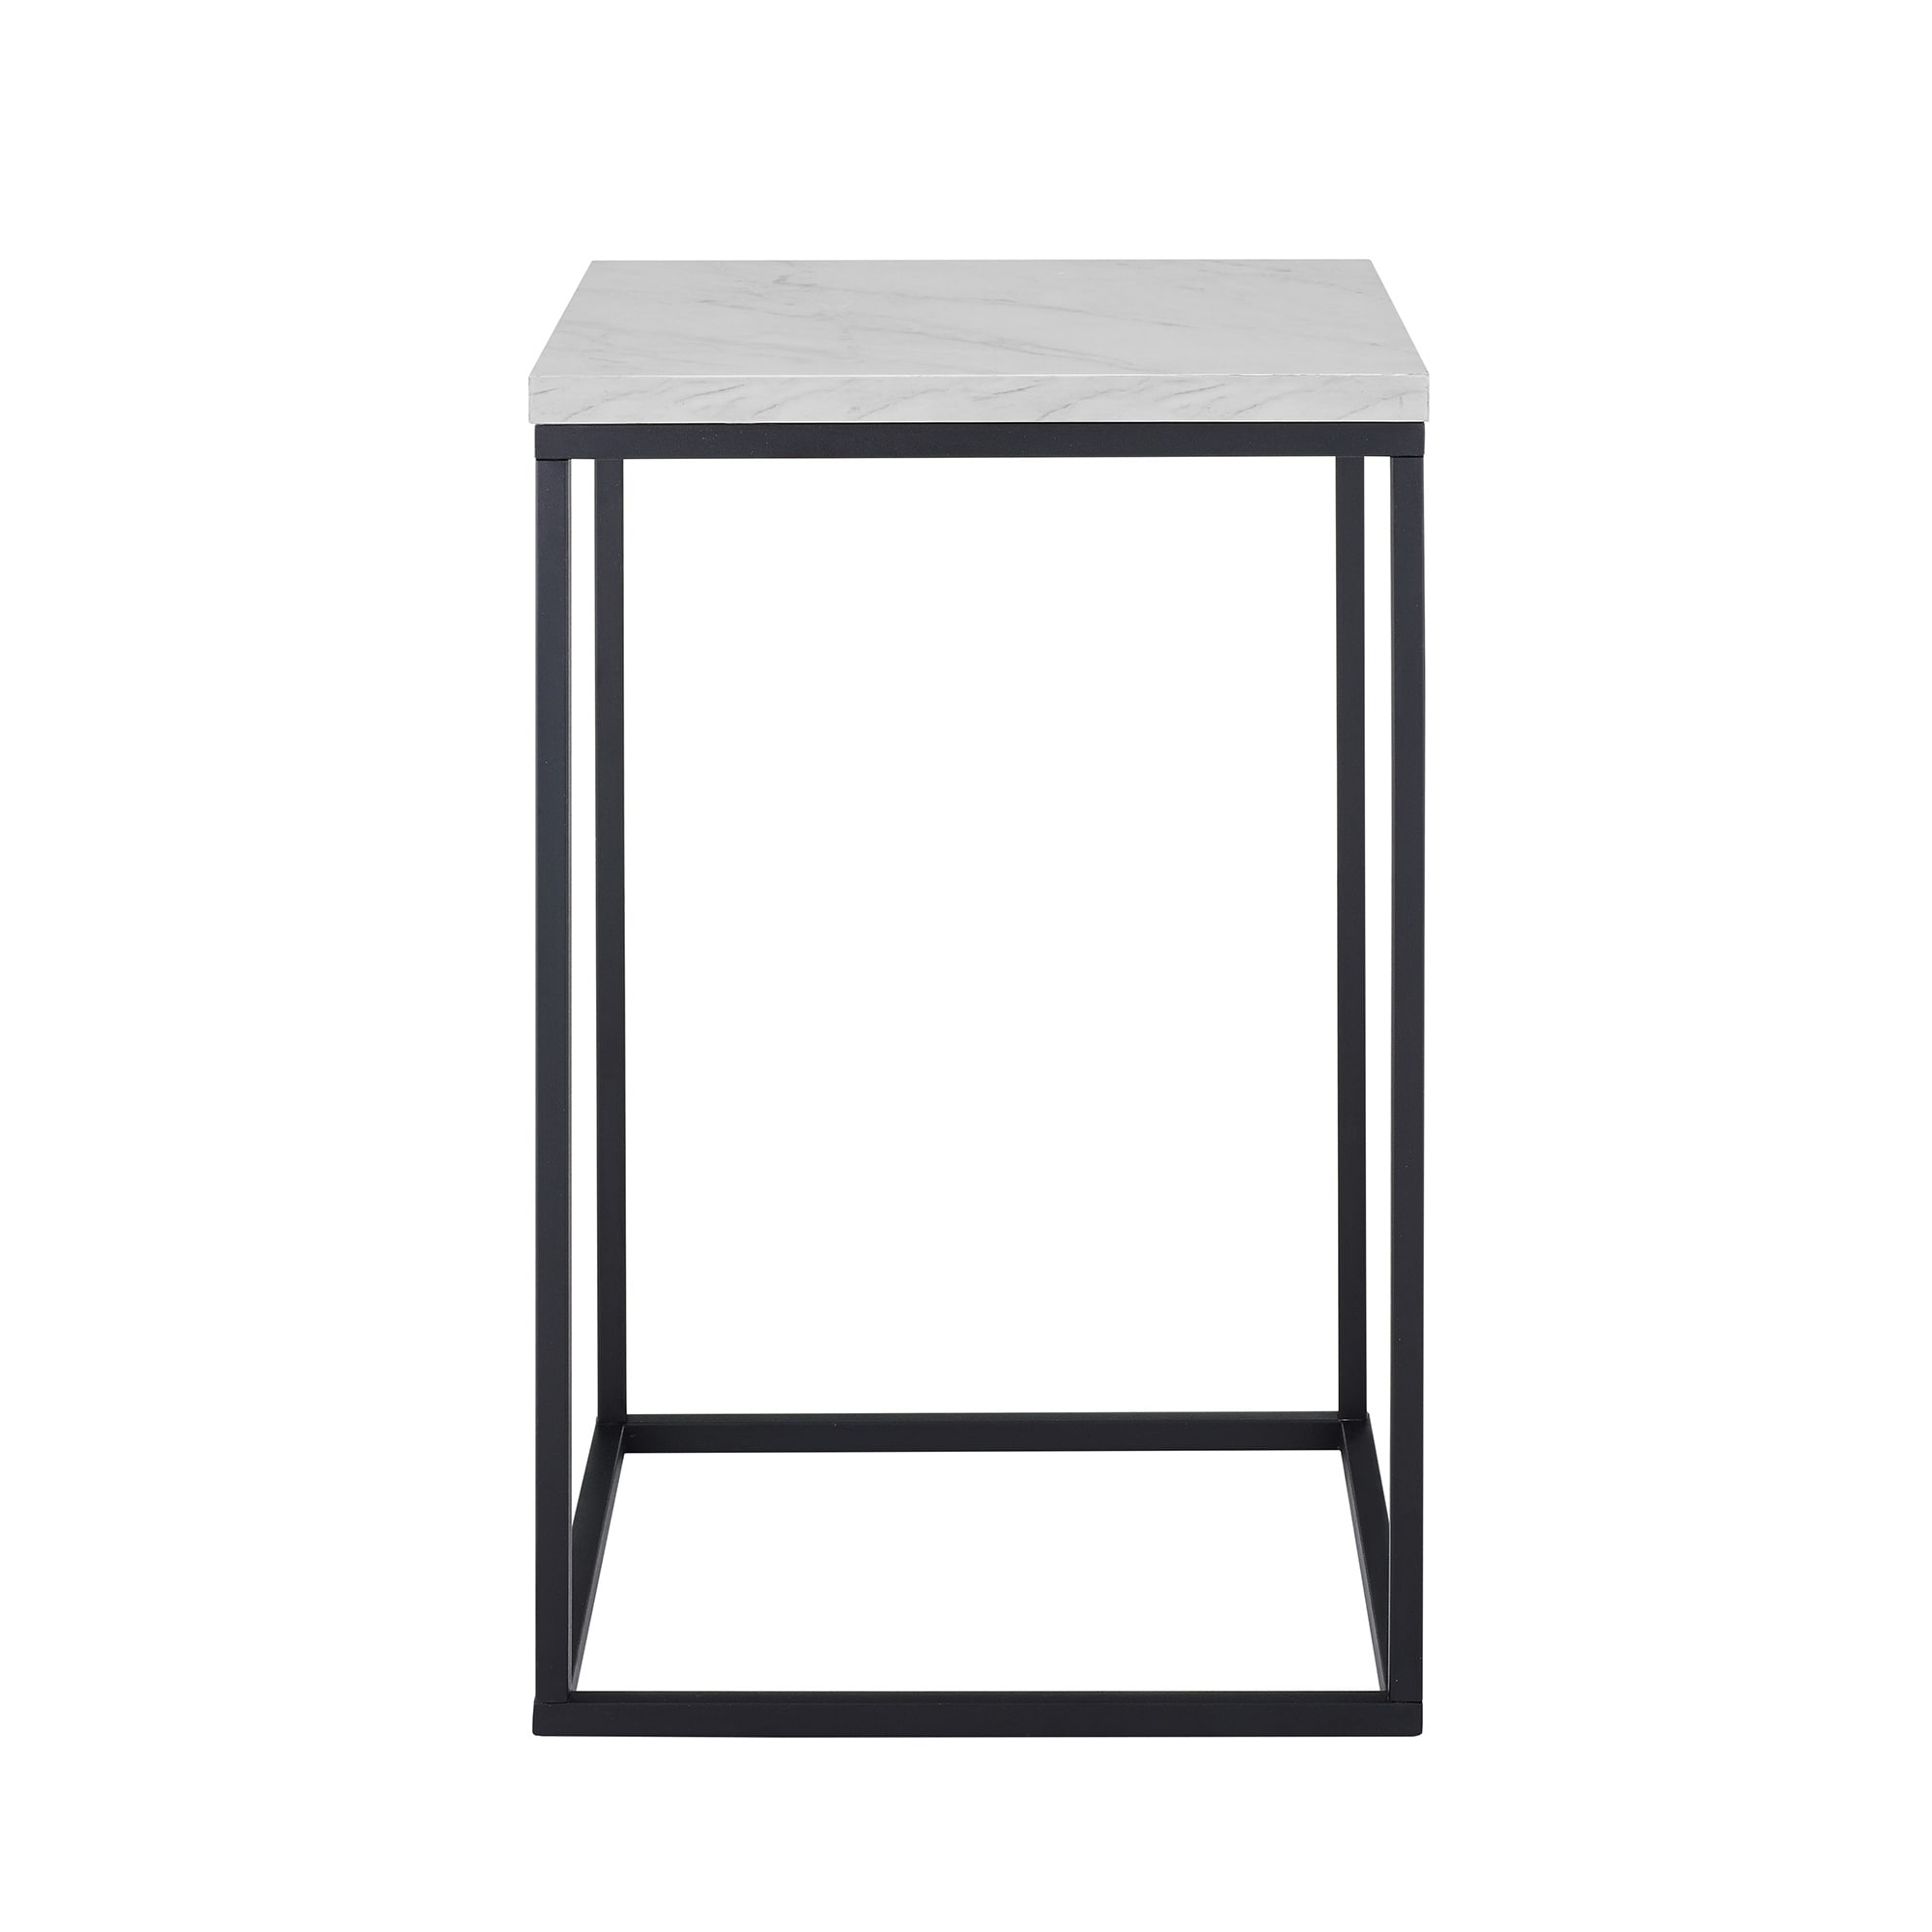 Shop Urban Industrial Inch Side Table Faux Marble Concrete On - Industrial concrete side table